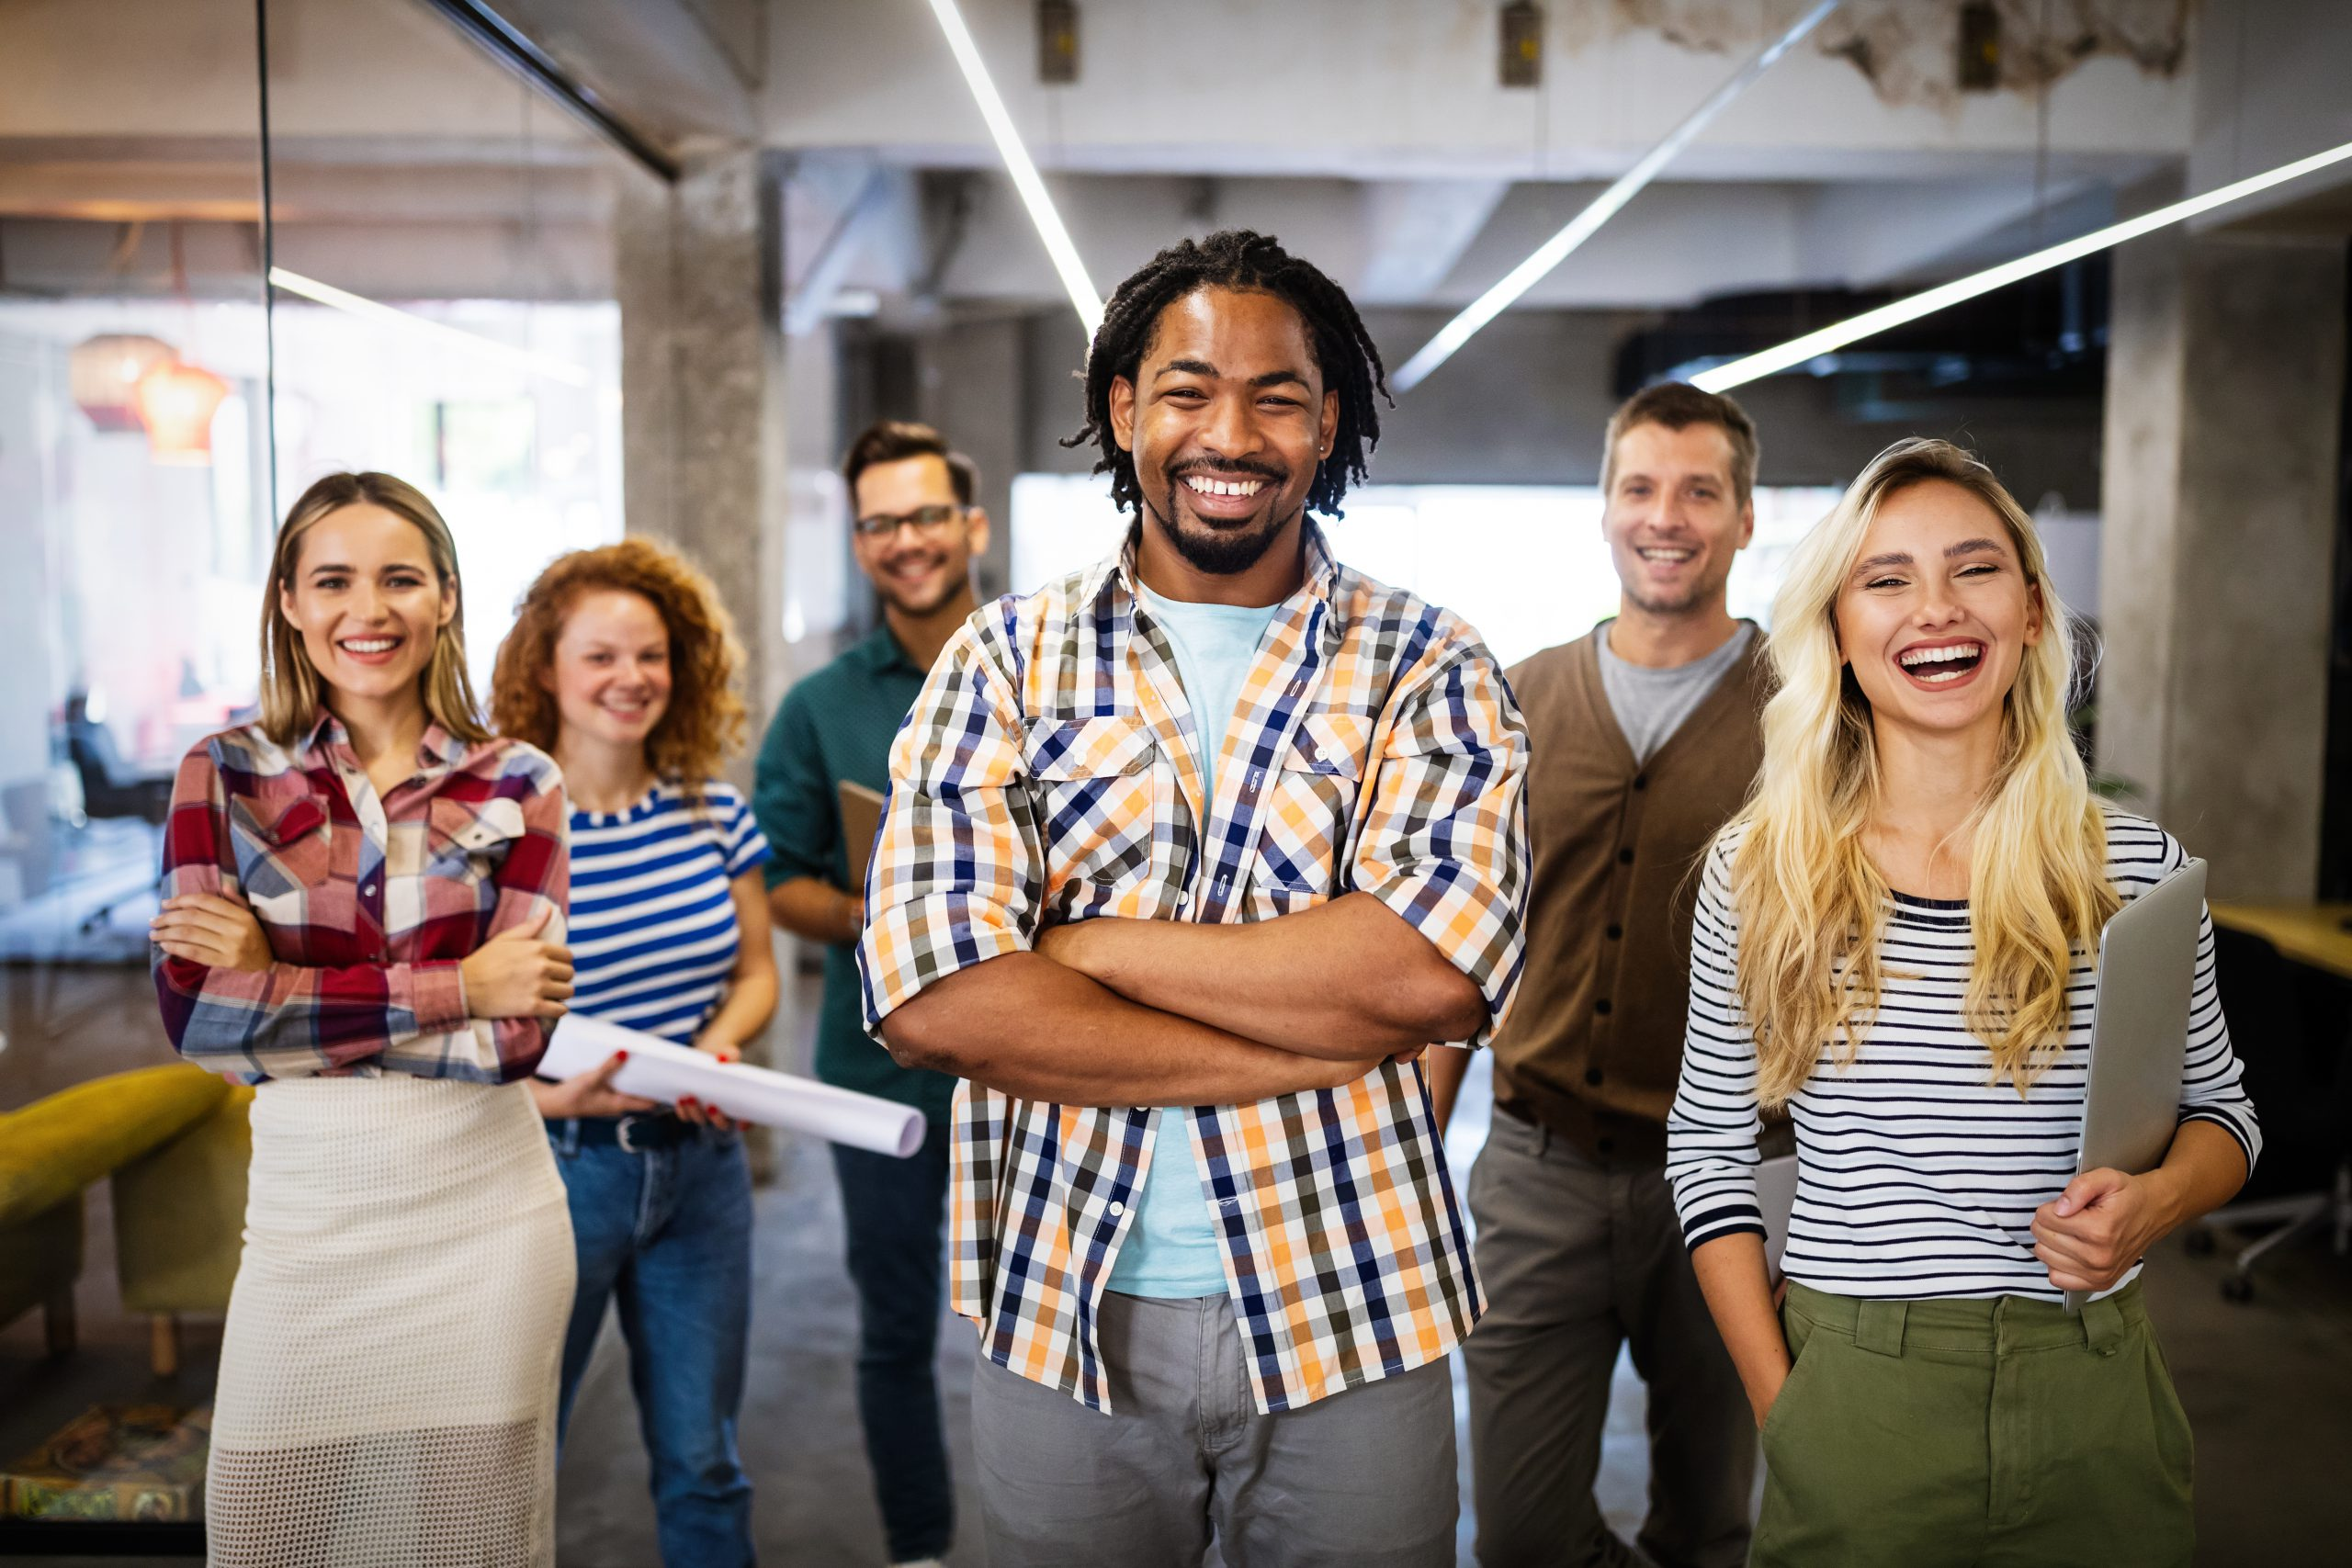 Increase Hiring and Retention Numbers with Employee Insurance Benefits